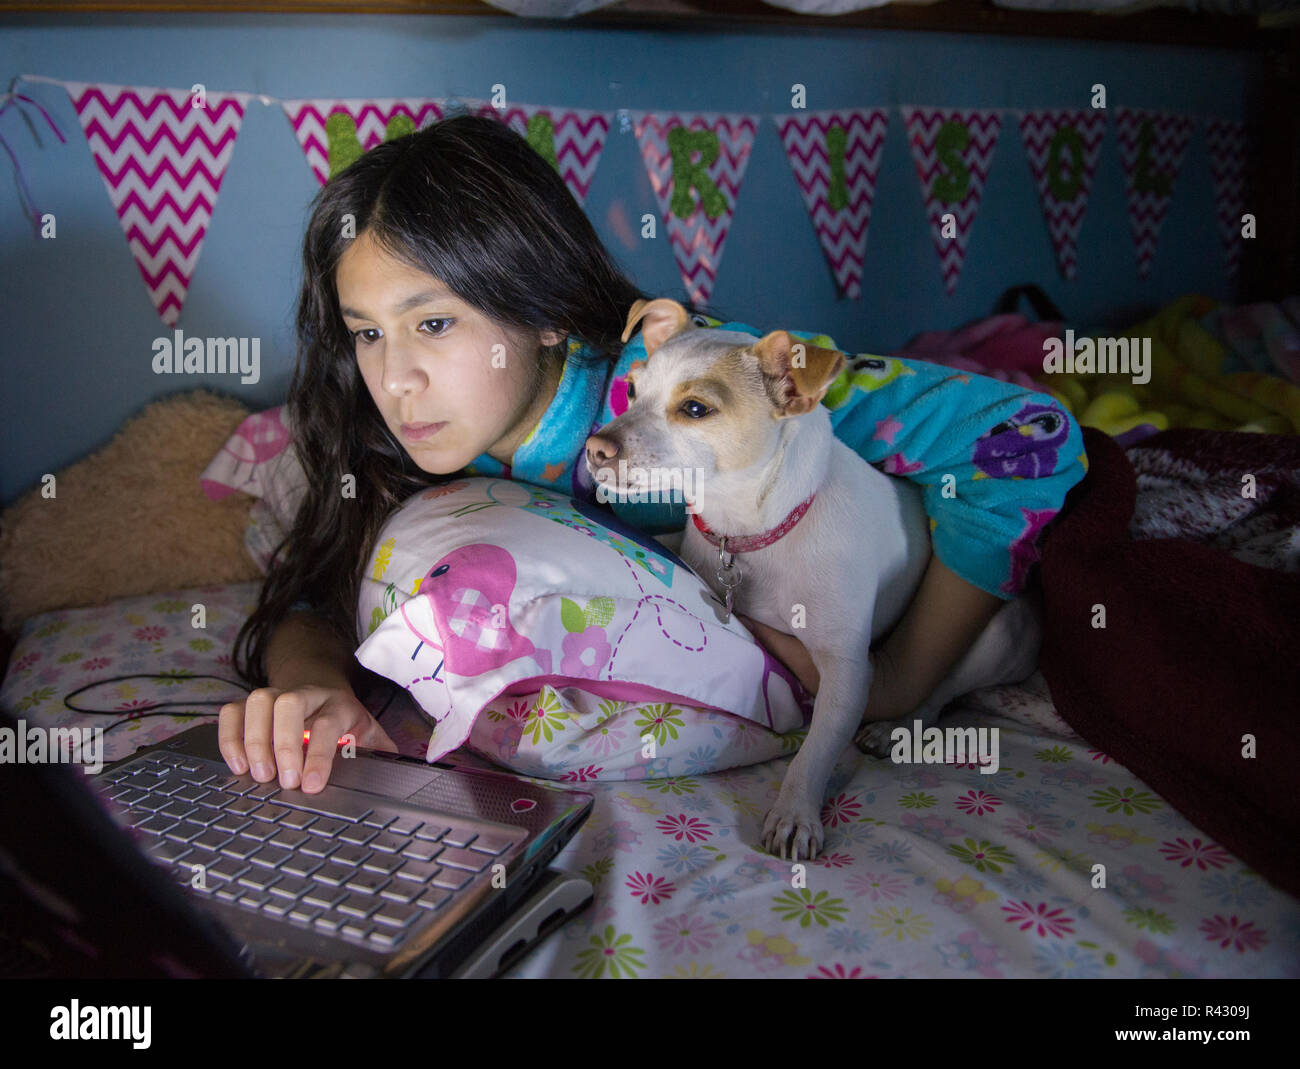 Pets in the home as family member. A teenager and her dog are very bussy watching videos on a laptop inside the room on the bed - Stock Image